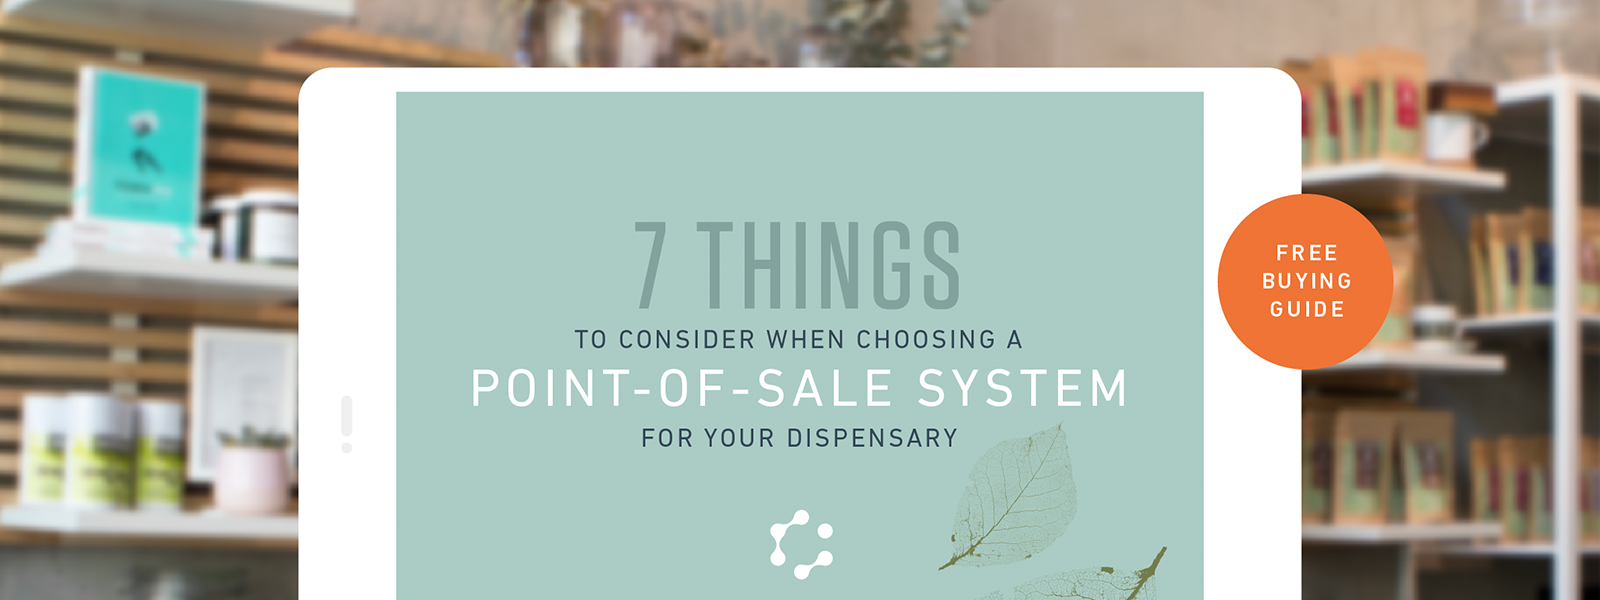 7 Things to Consider Choosing POS Dispensary